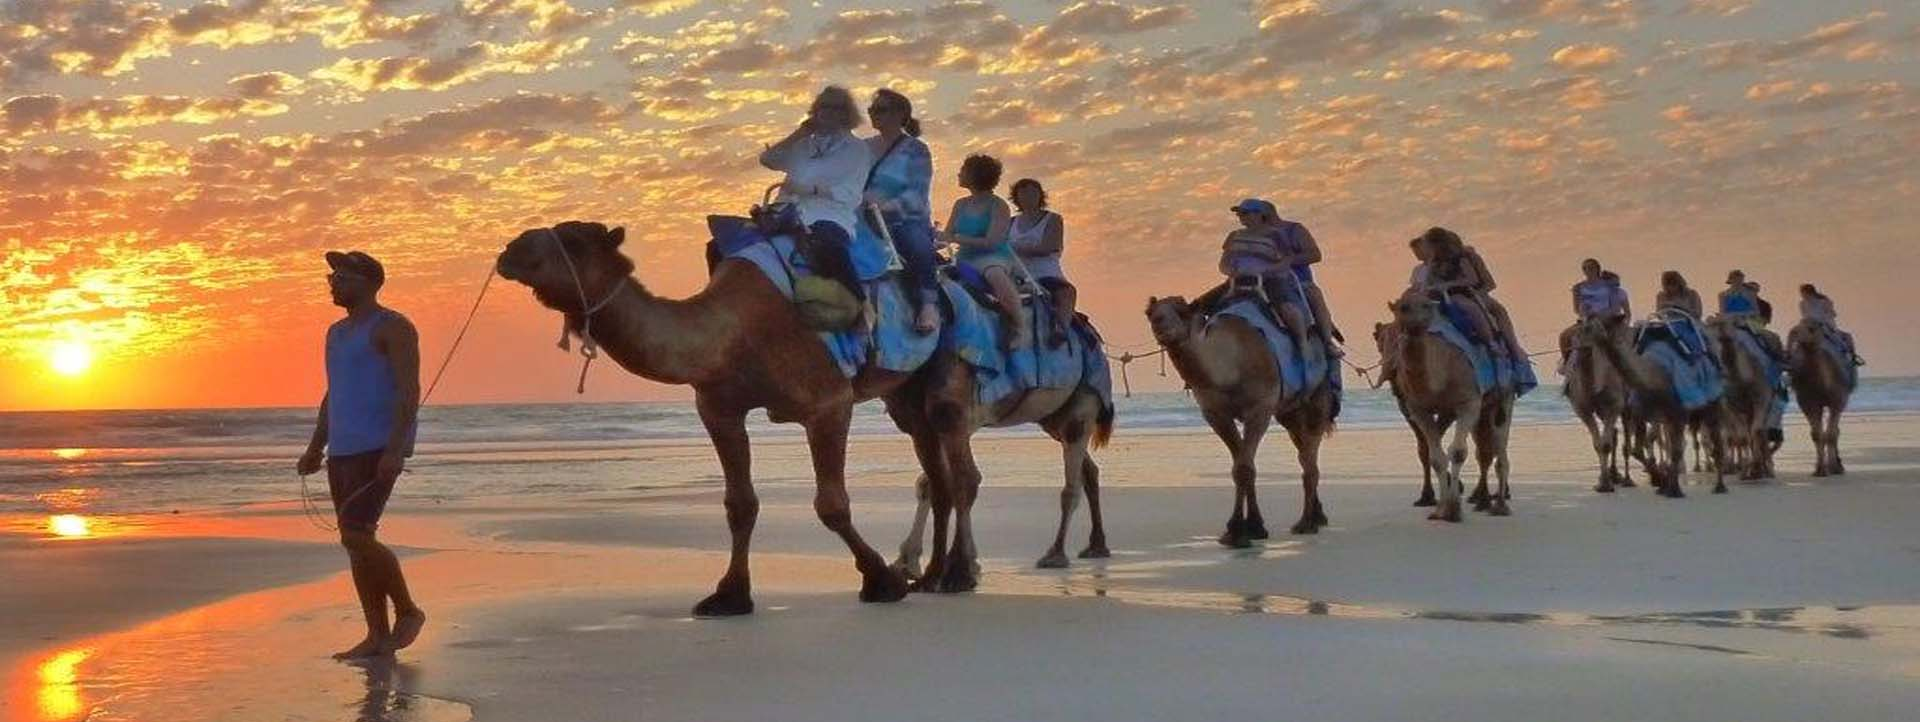 BROOME CAMEL SAFARIS slider Cable Beach